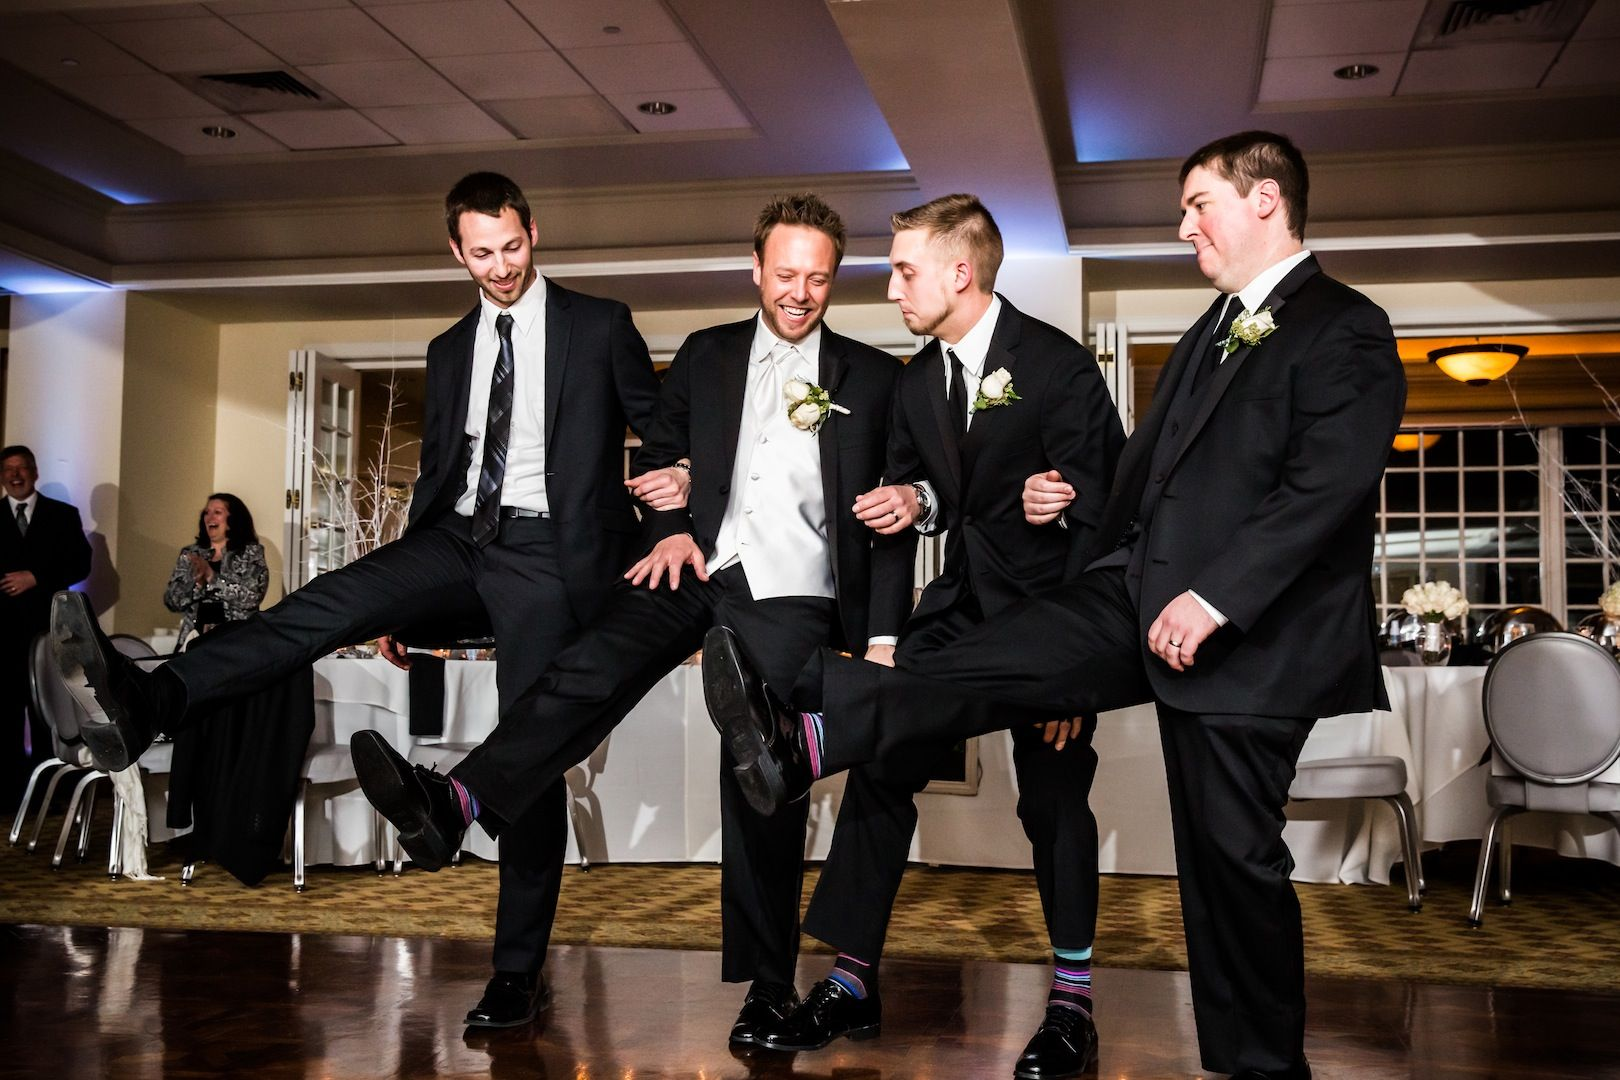 New yearus eve wedding at radnor valley country club in villanova